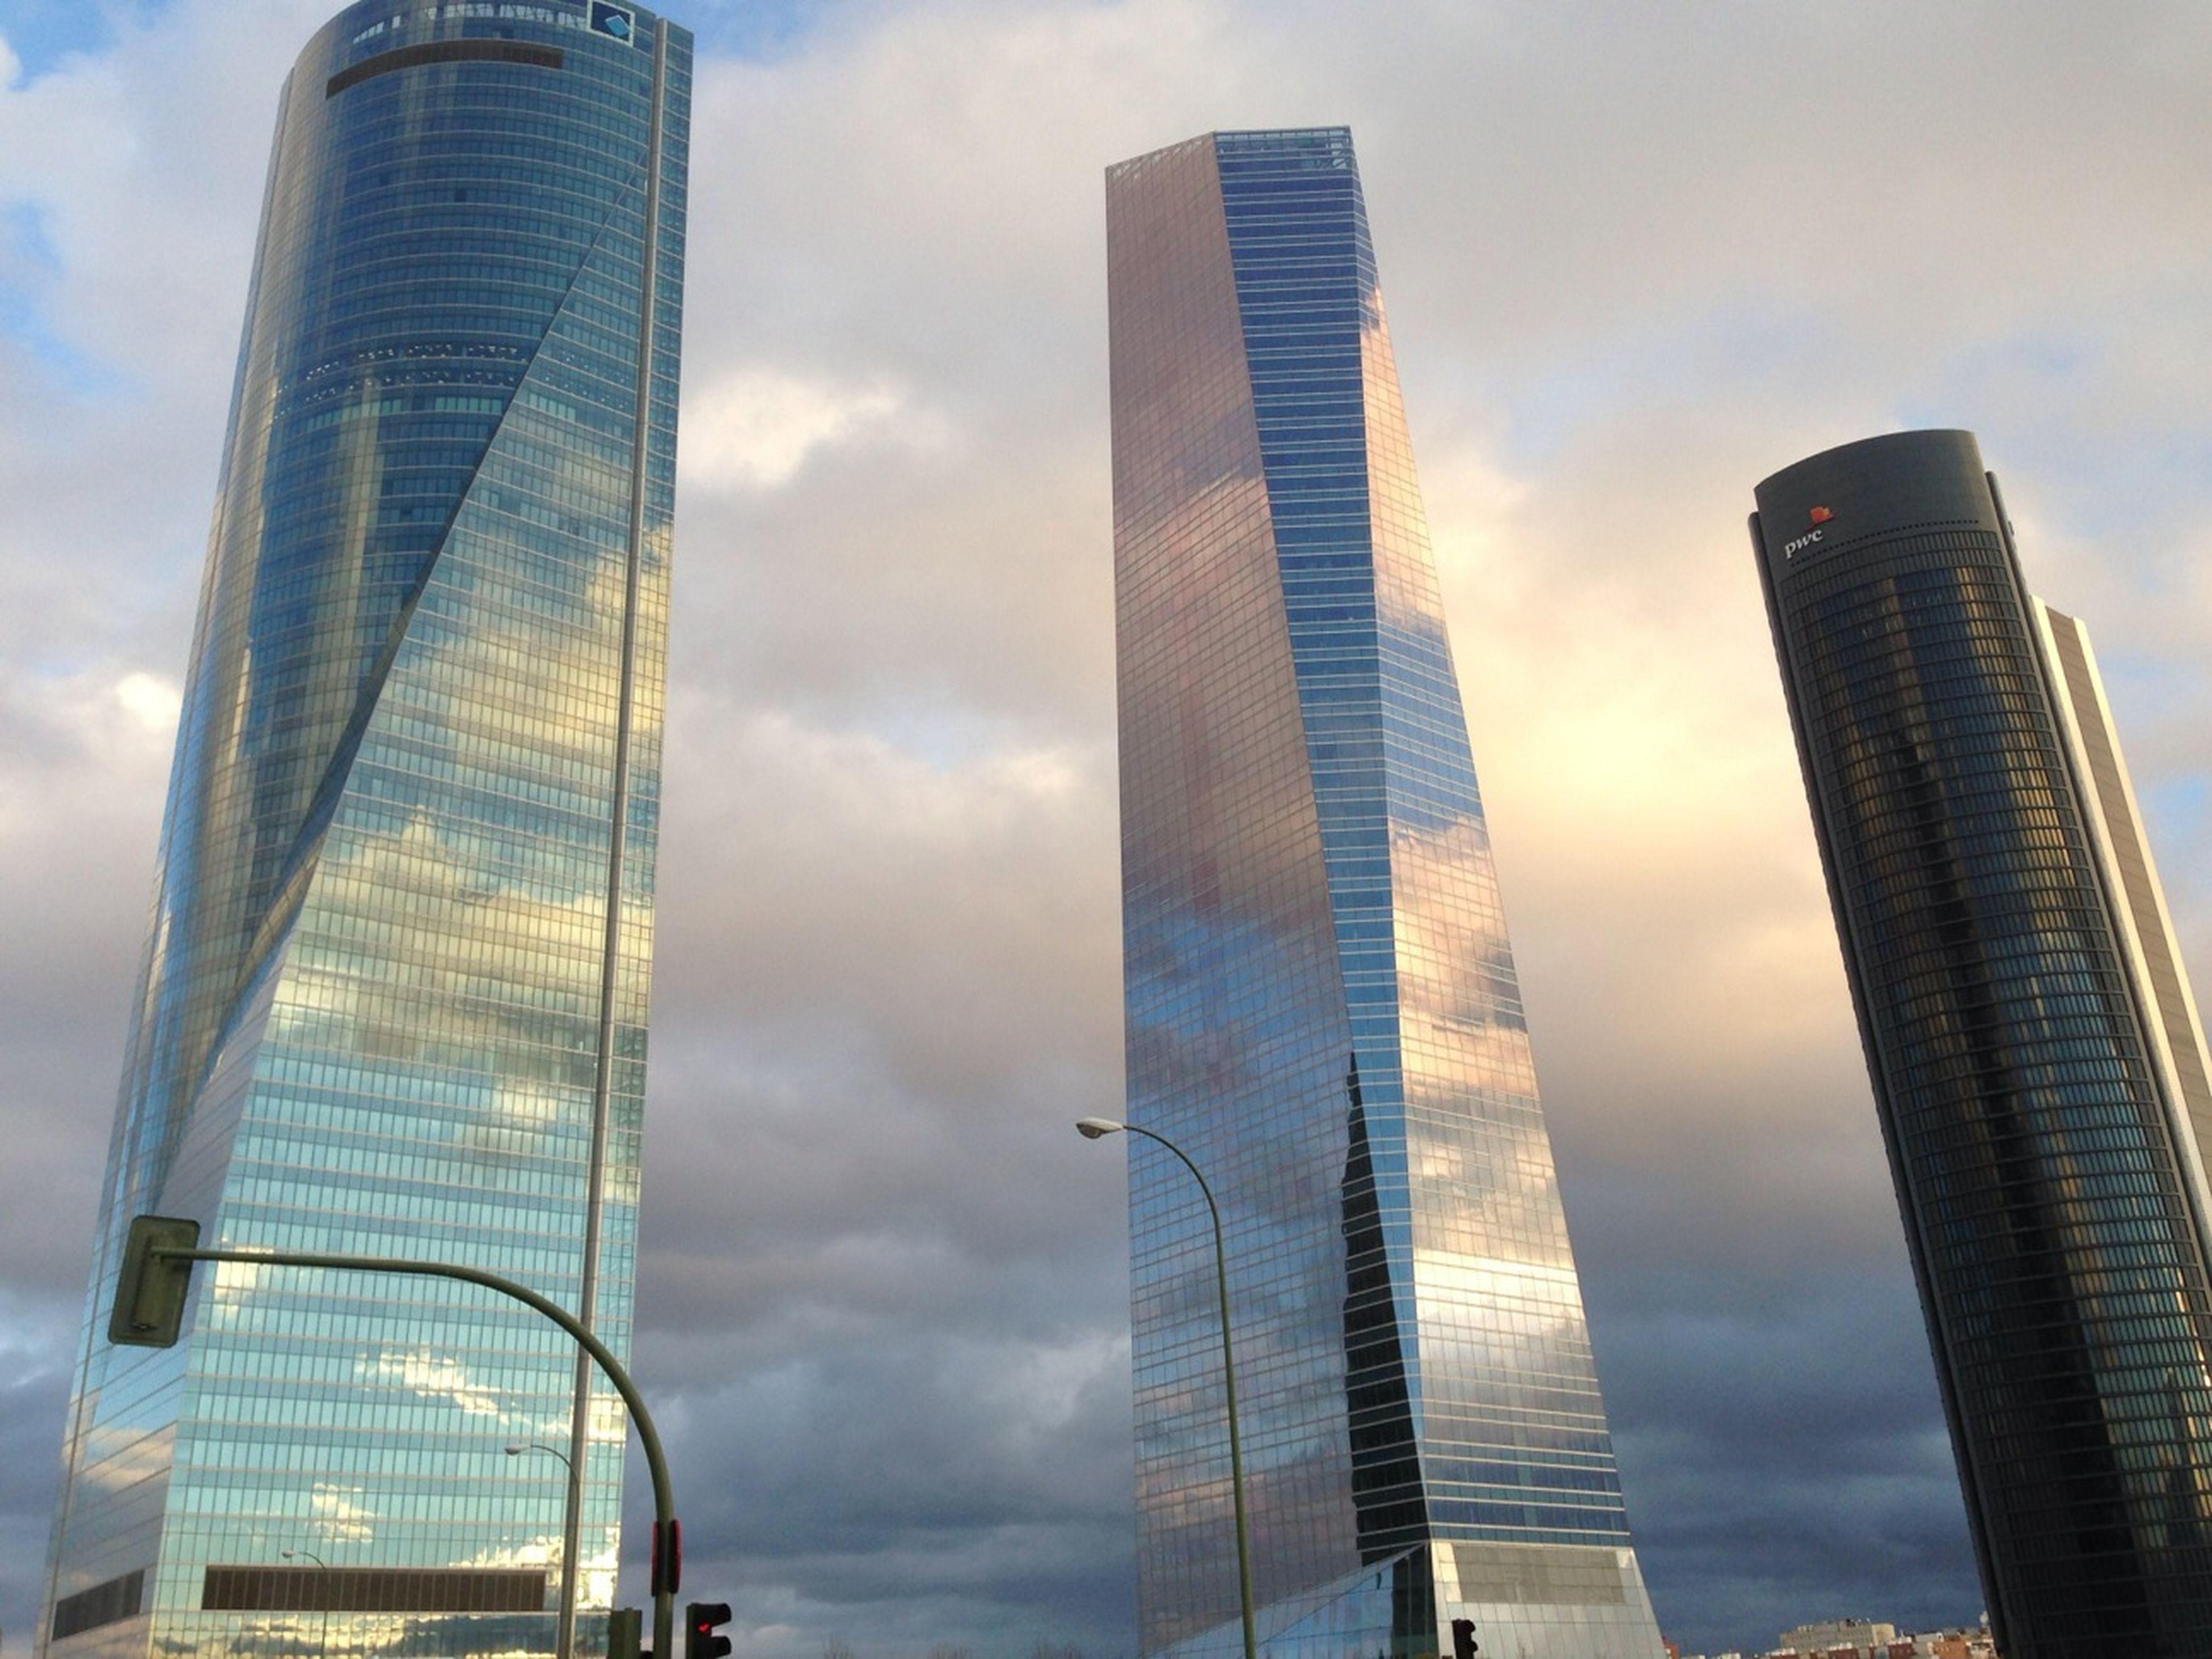 skyscraper, architecture, building exterior, built structure, modern, tall - high, low angle view, office building, sky, city, tower, cloud - sky, cloudy, cloud, tall, building, glass - material, capital cities, financial district, urban skyline